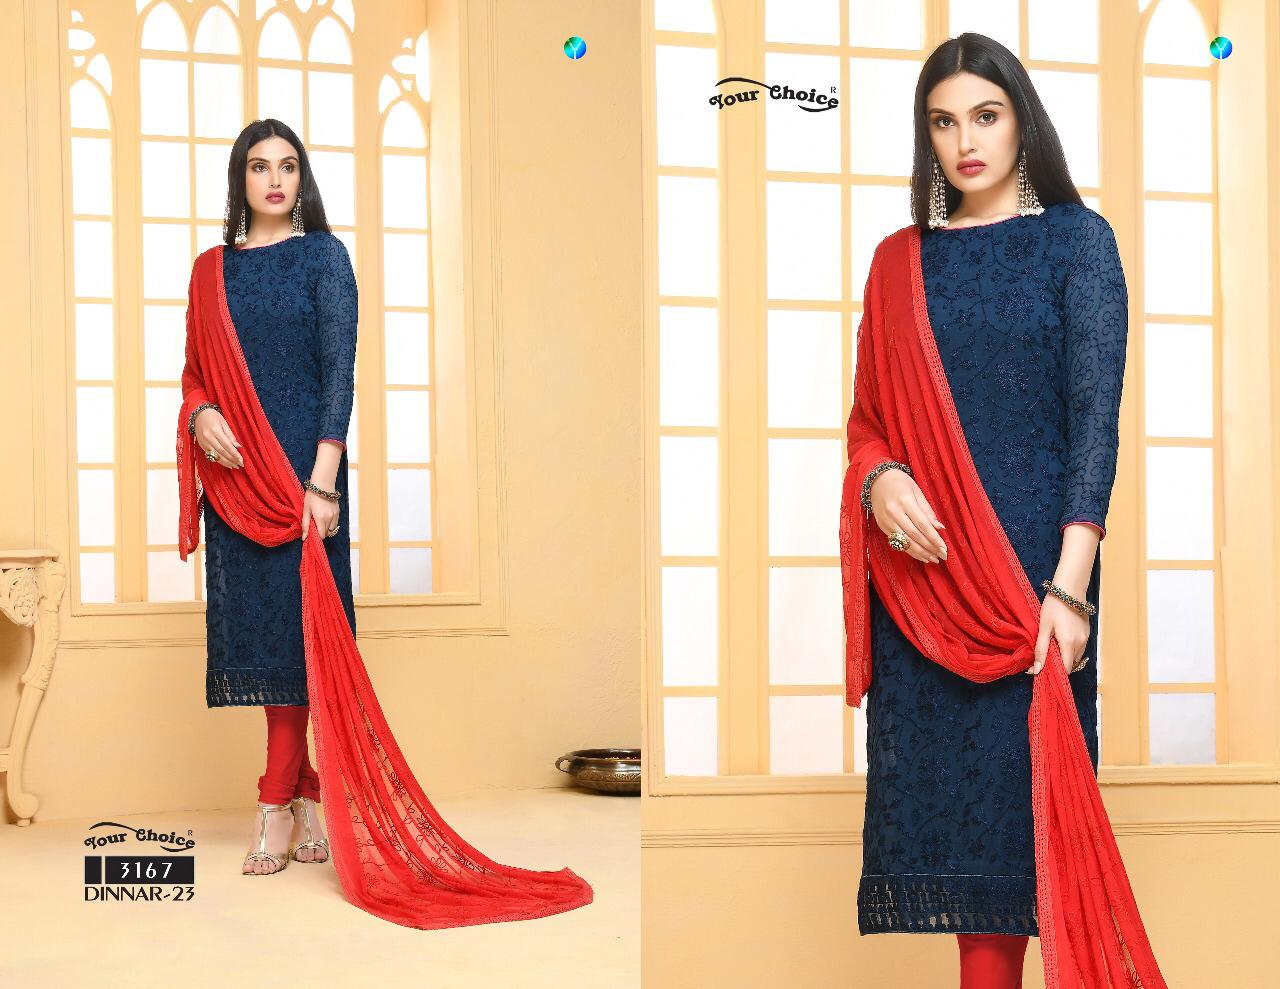 5db7264569 YOUR CHOICE DINNAR VOL 23 PAKISTANI SUITS AT CHEAPEST PRICE